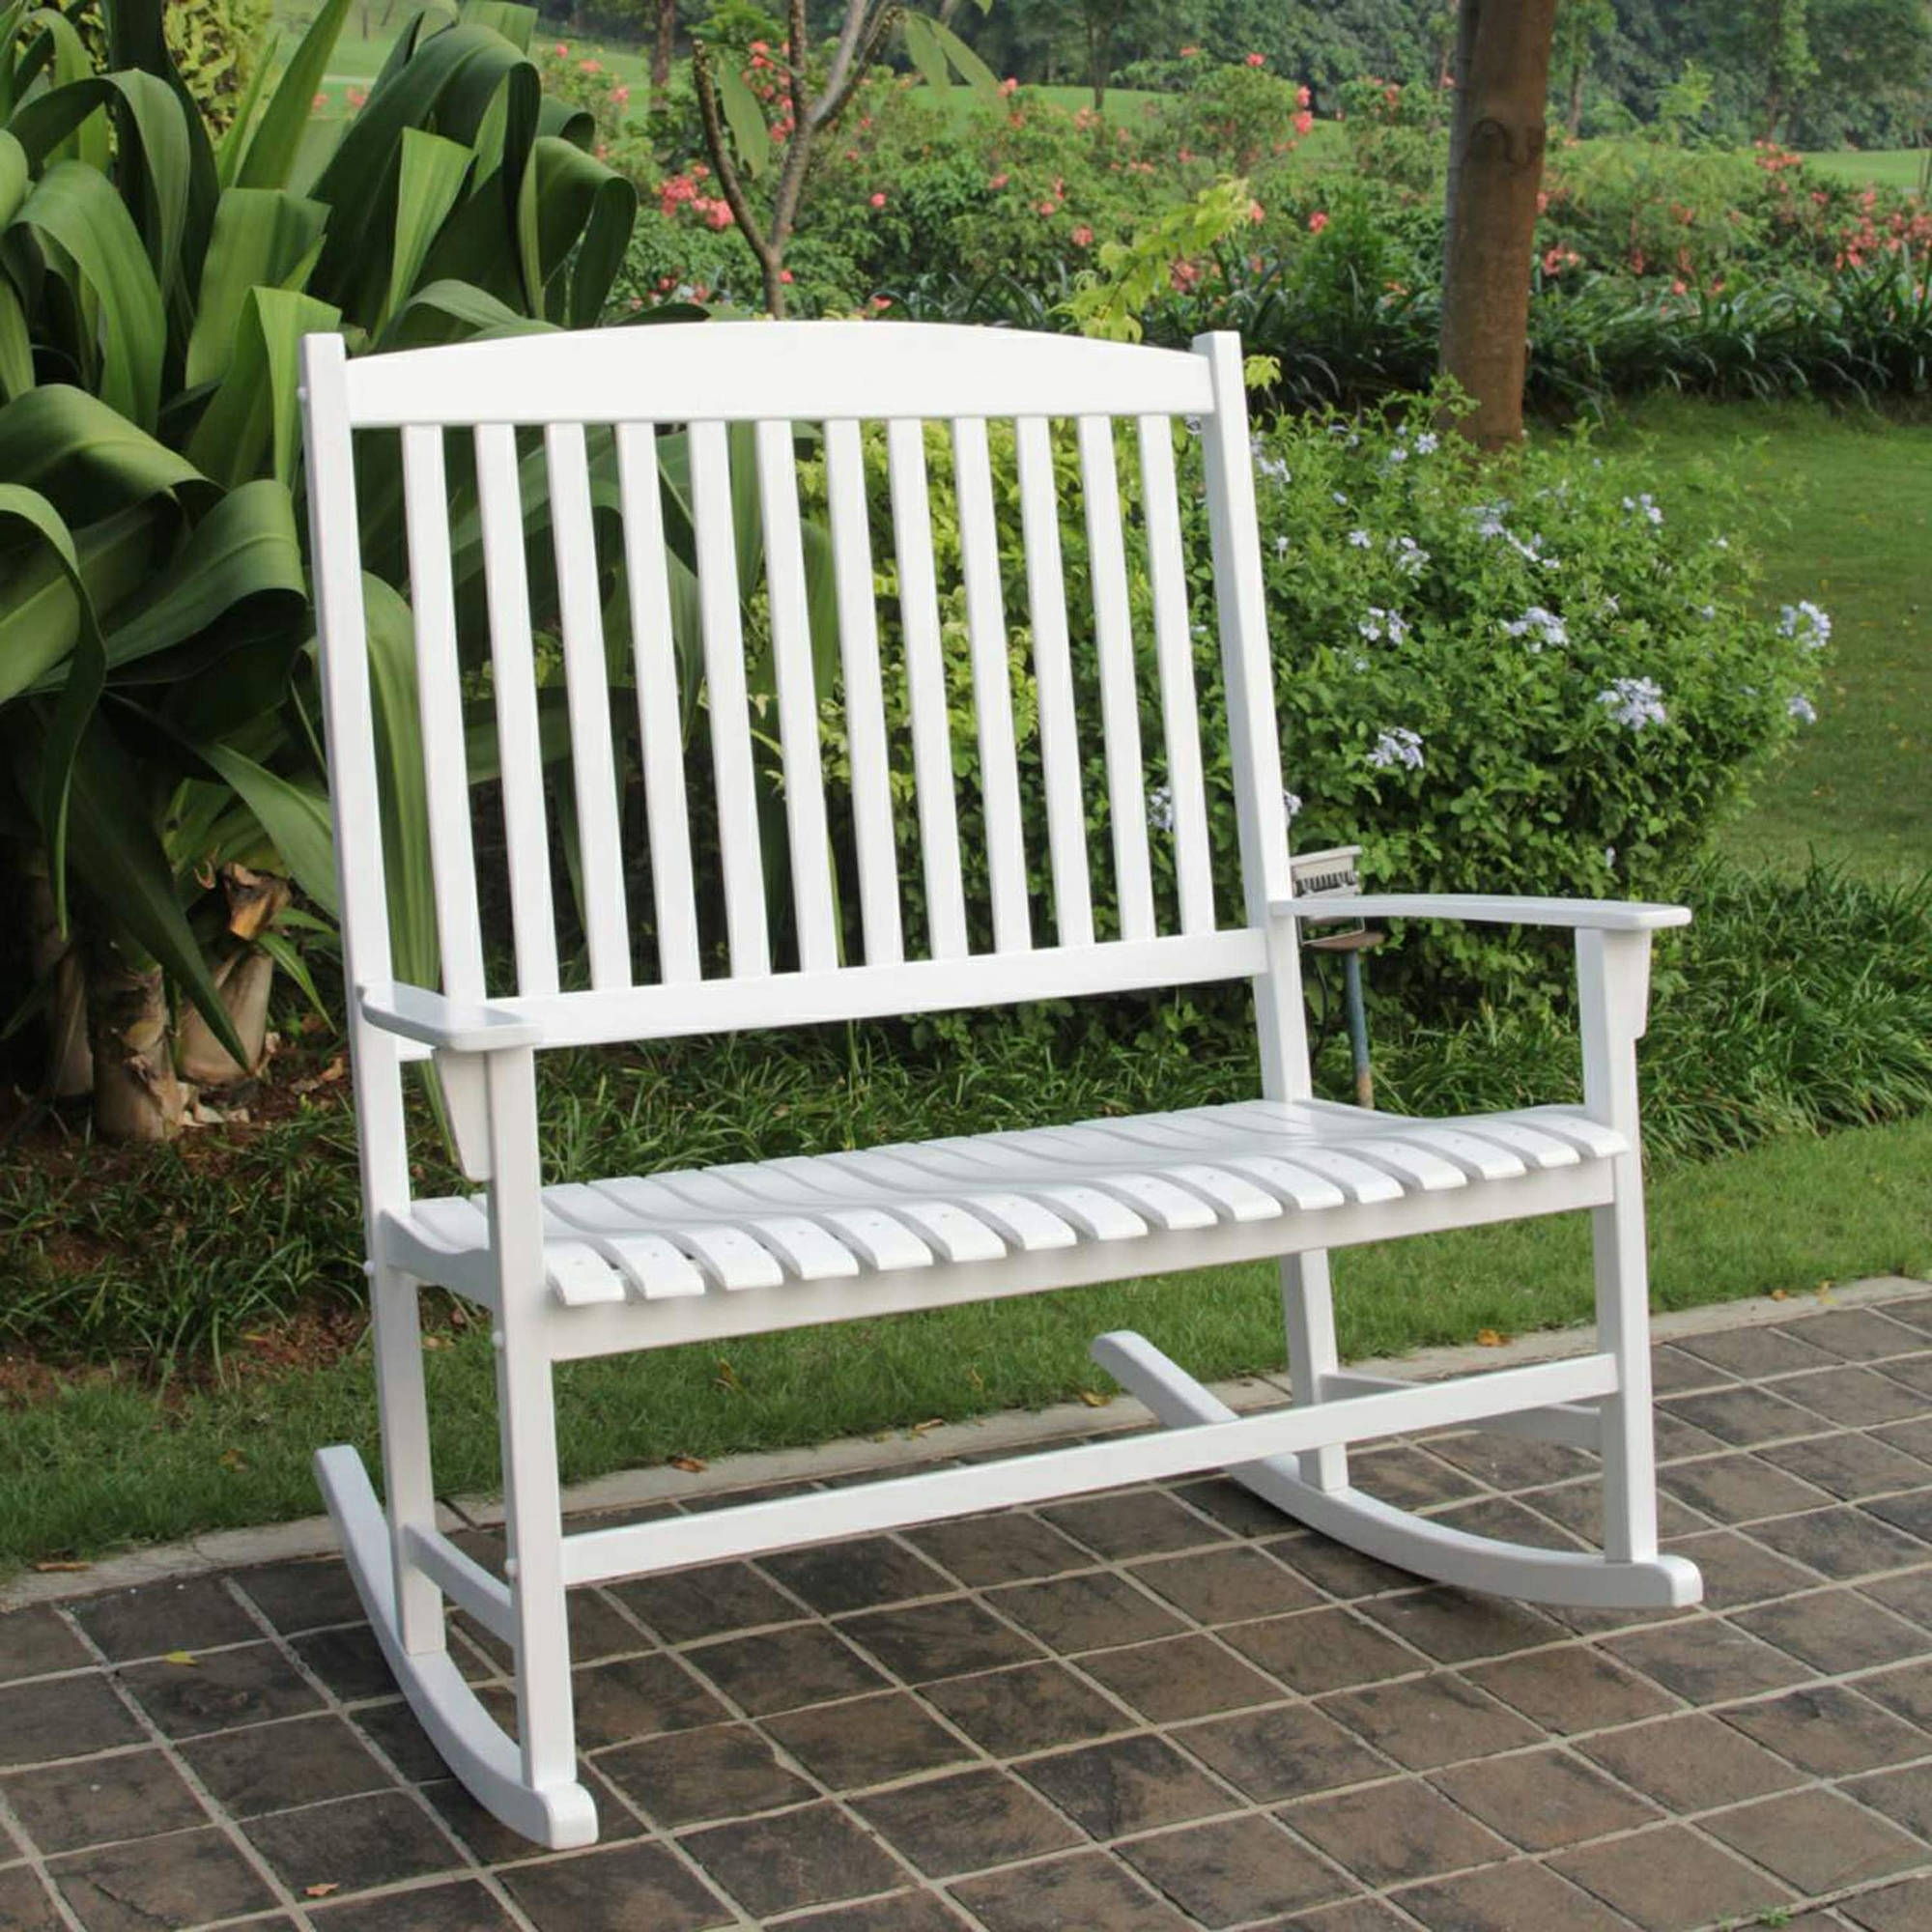 Widely Used White Patio Rocking Chairs Throughout Patio Loveseat White Hardwood Outdoor Rocking Chair For  (View 6 of 15)